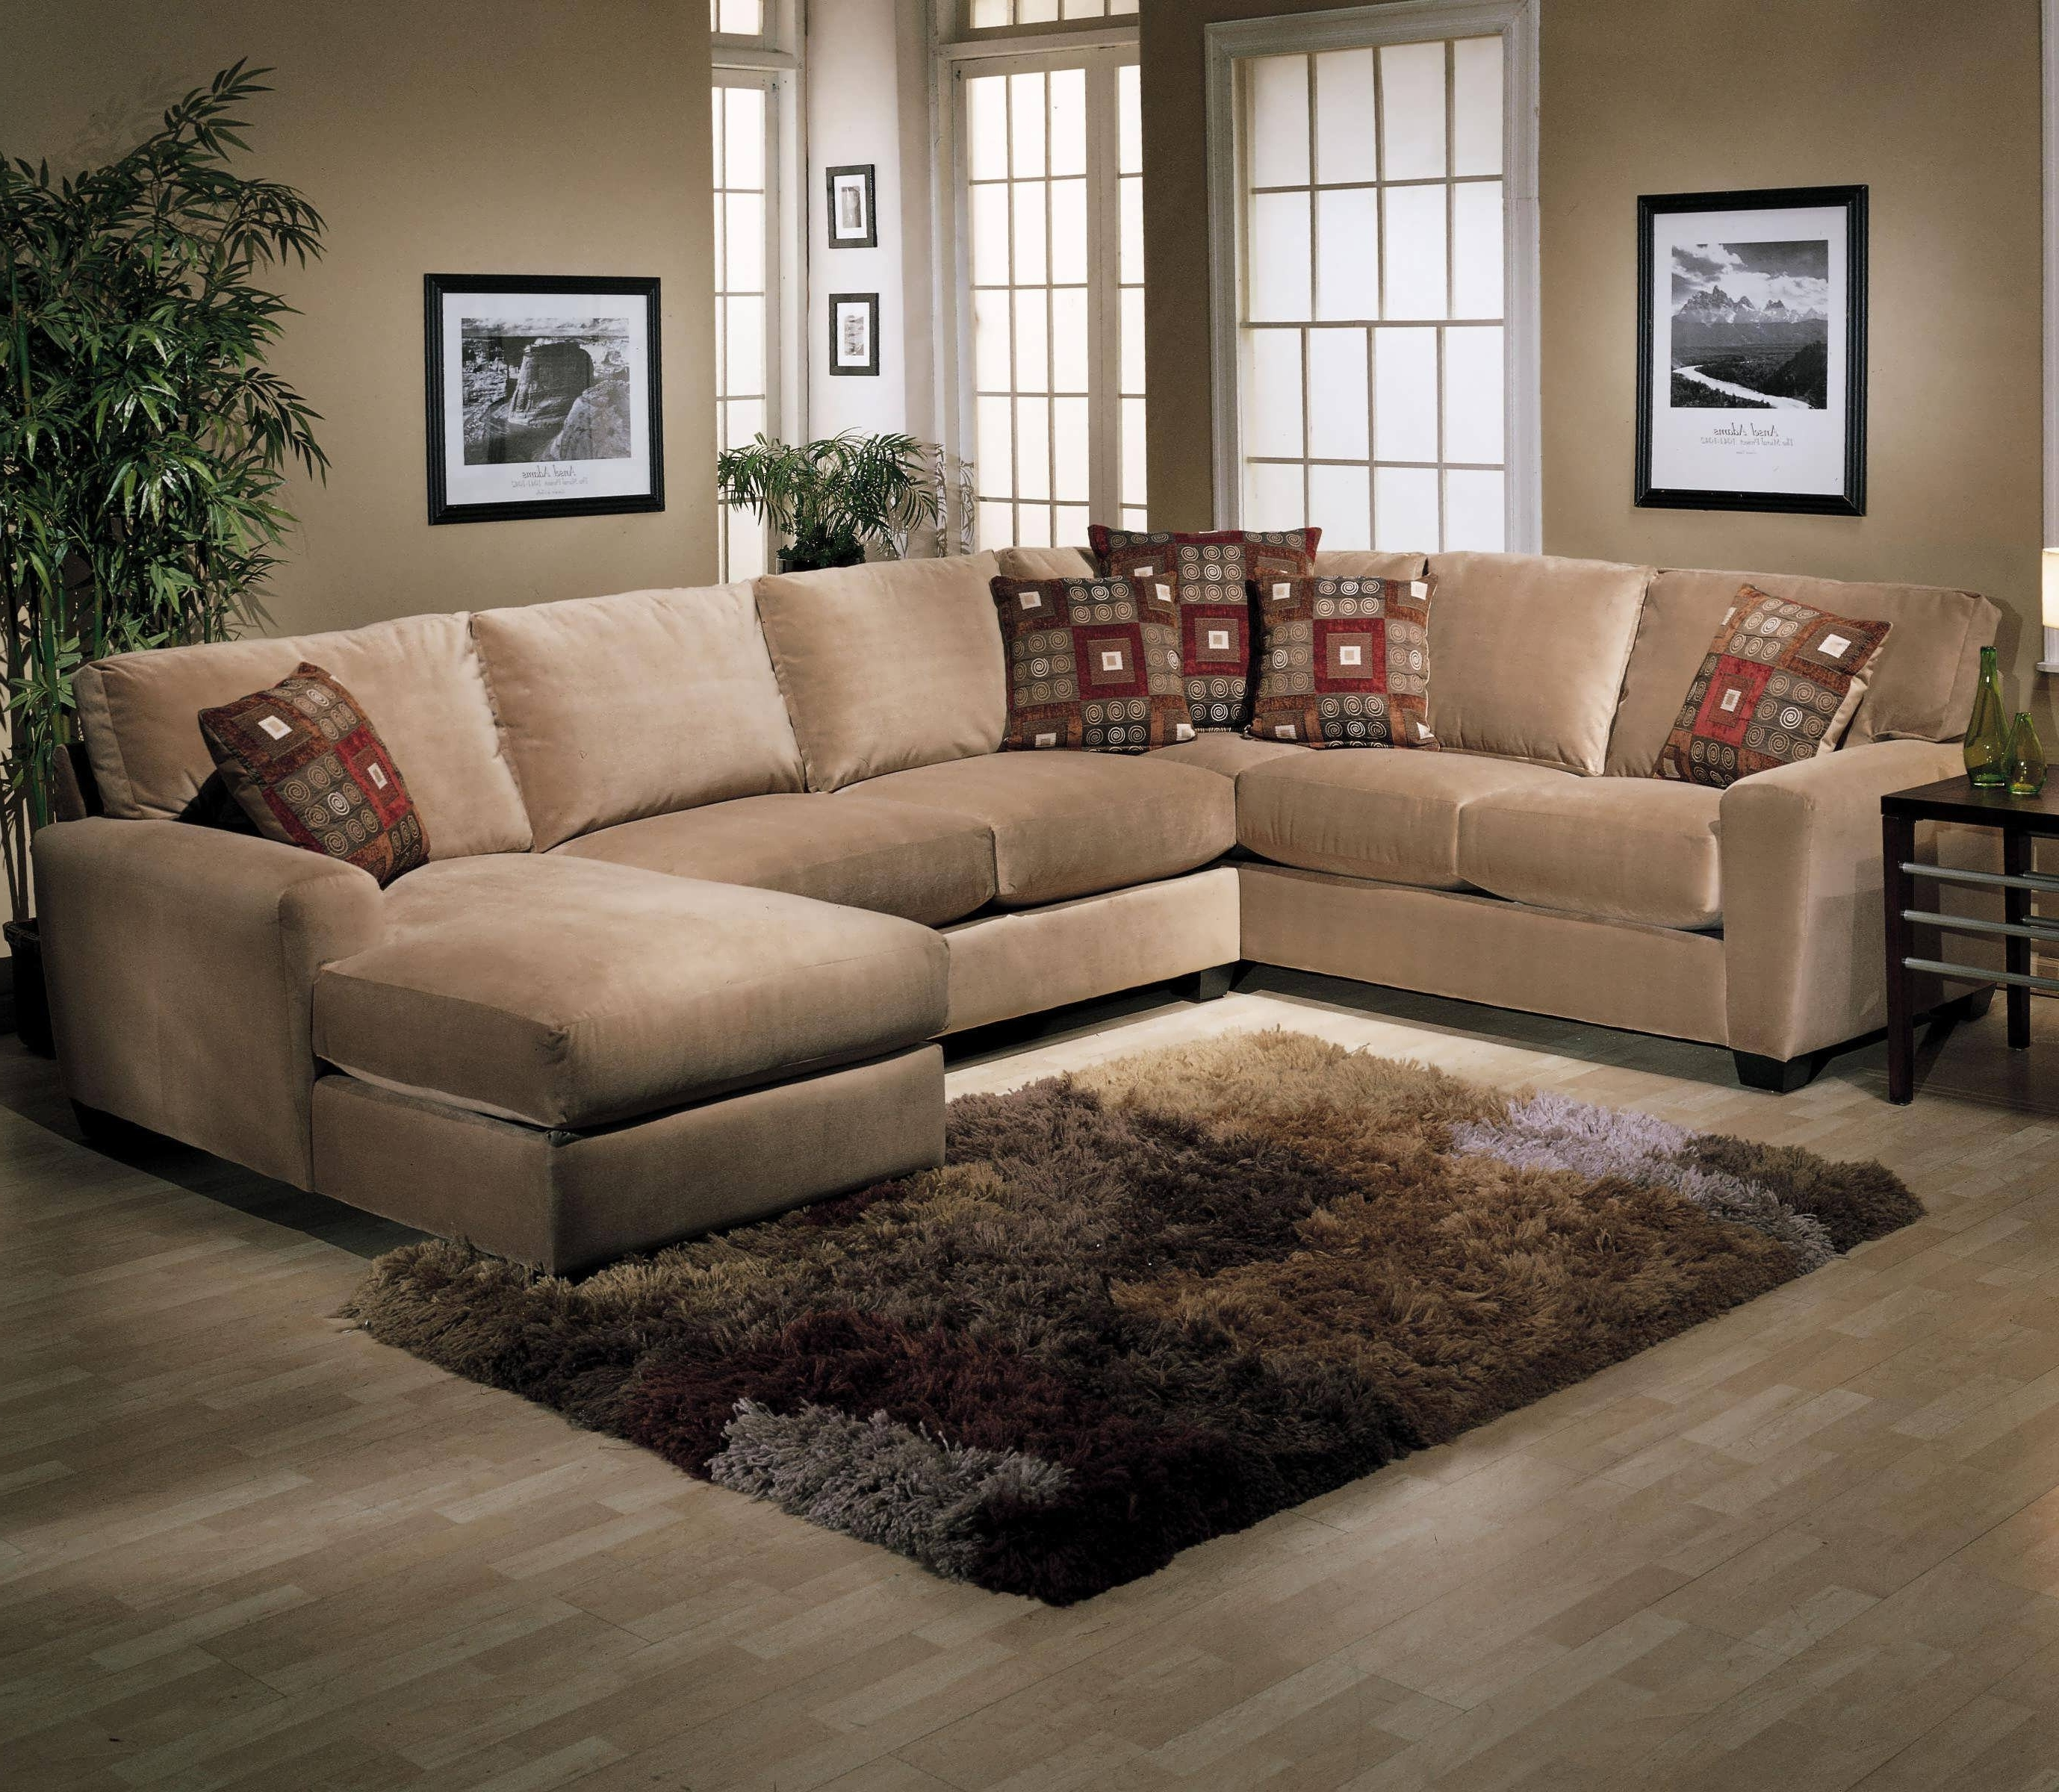 Popular Sofa : U Shaped Sofa Recliners Chairs Sofa Large U Shaped Sofa Regarding Reclining U Shaped Sectionals (View 7 of 15)